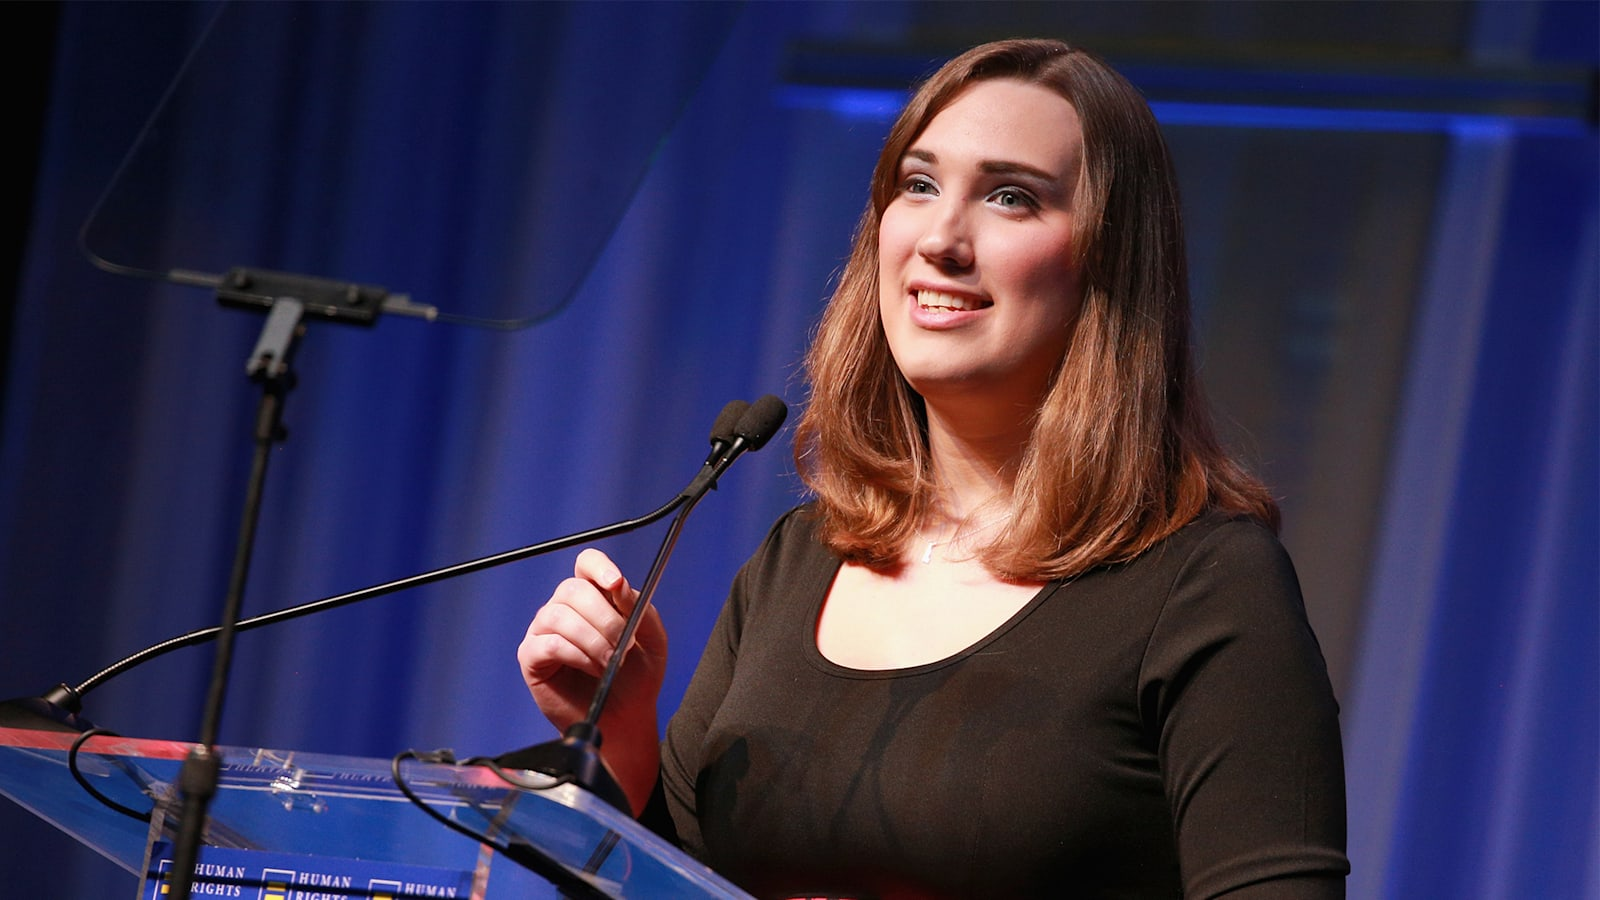 Speaking With Pride, Not Prejudice: Sarah McBride Reflects on the Power of LGBTQ Voices